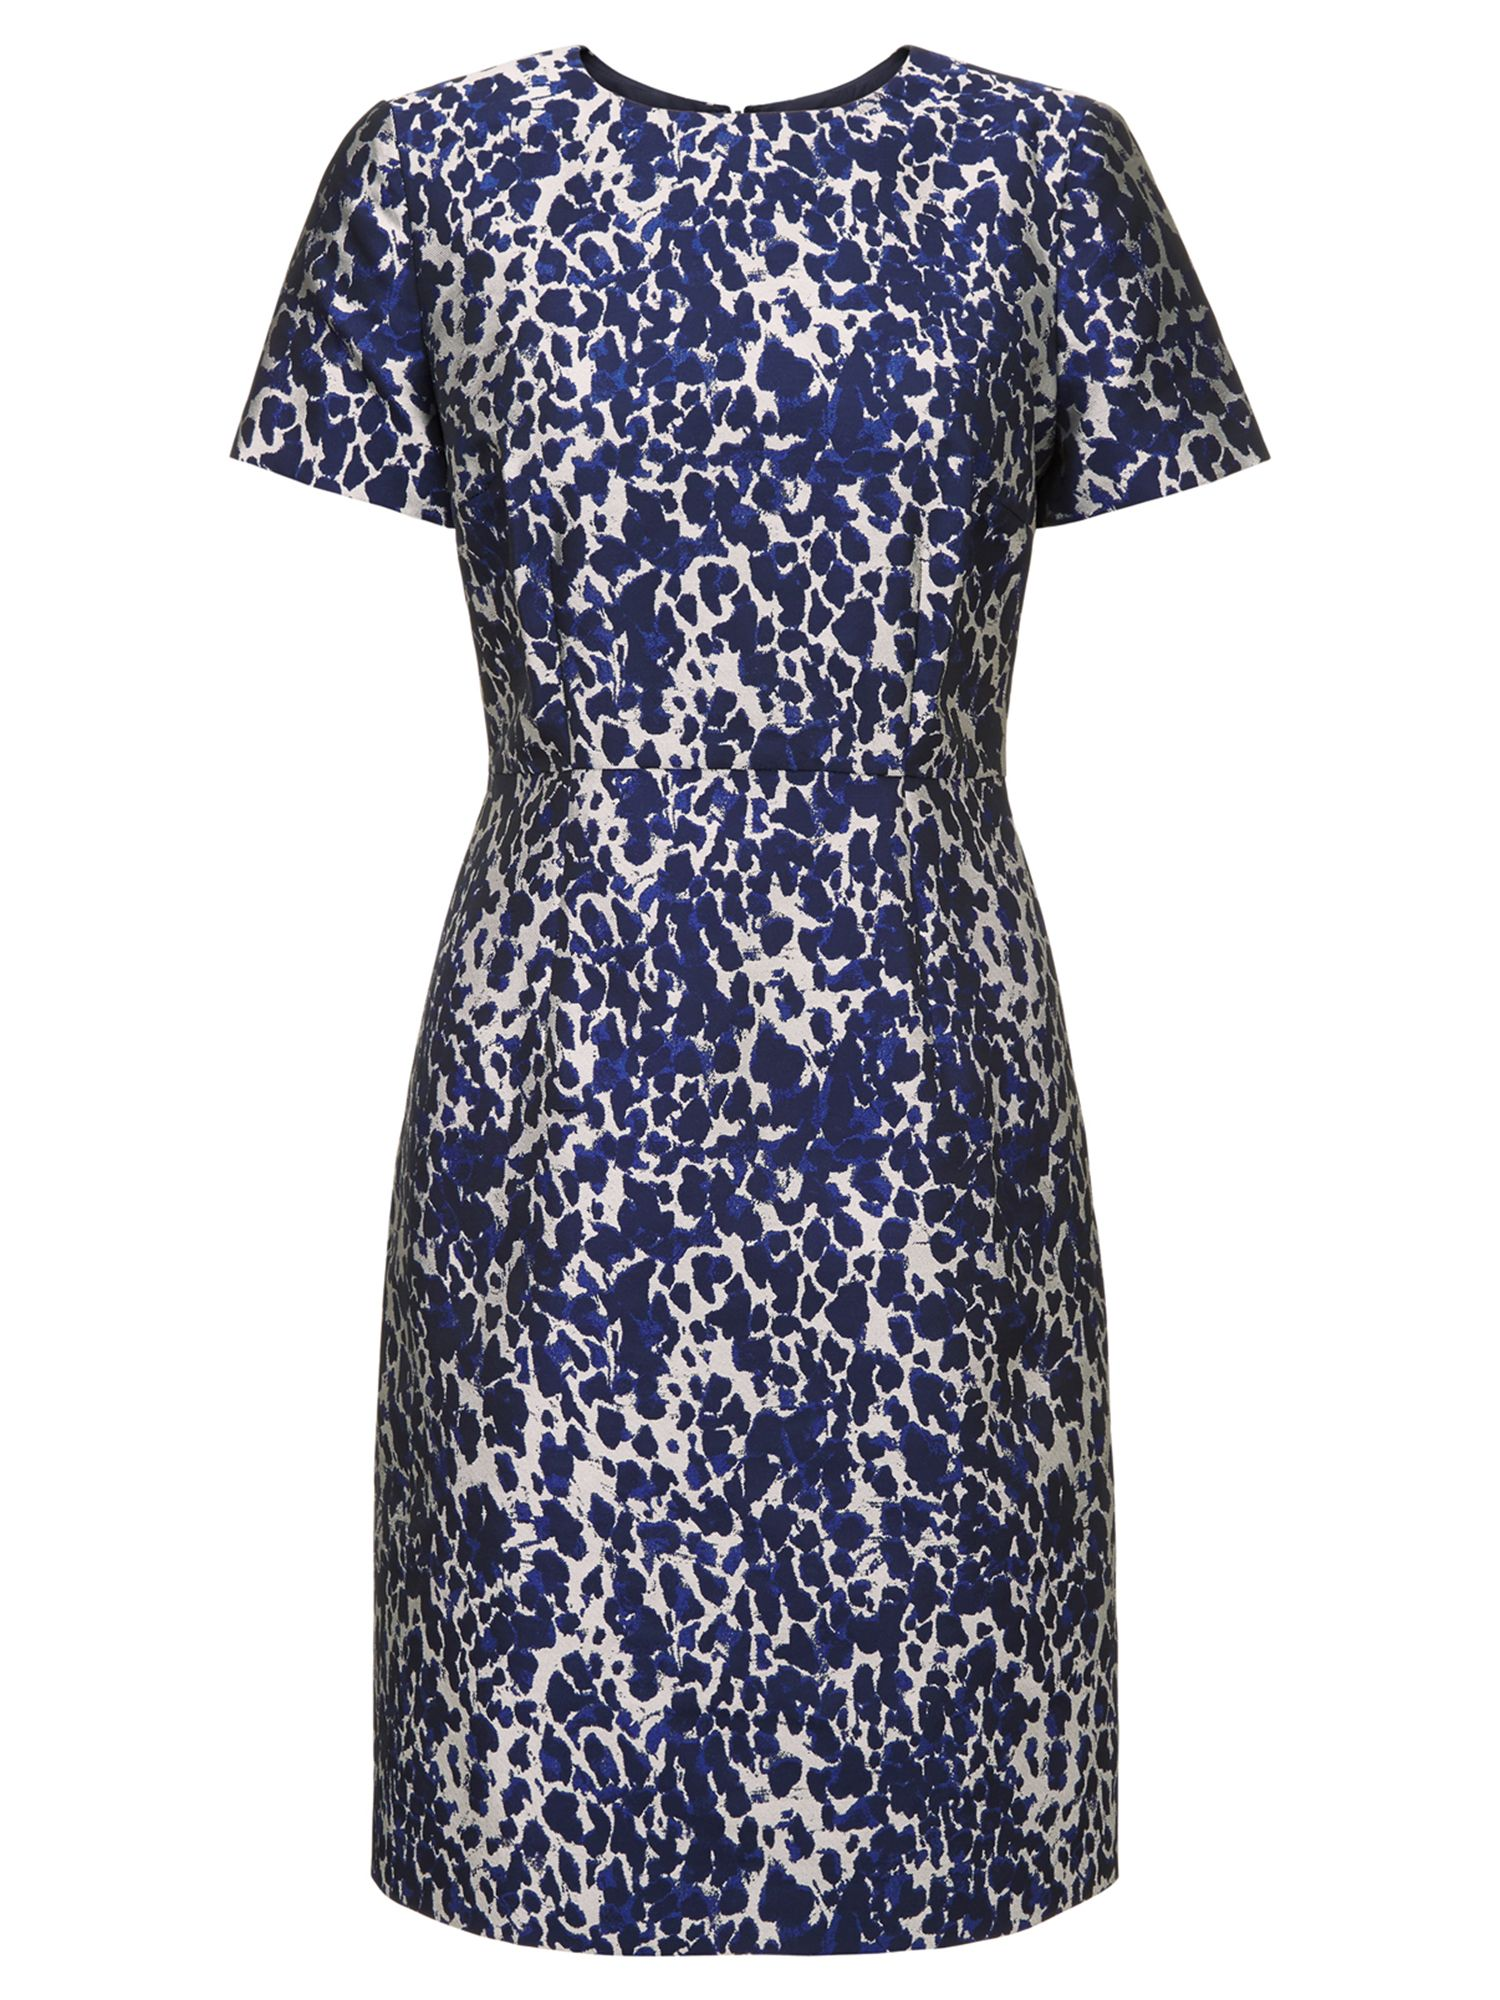 Hobbs Kayla Dress, Multi-Coloured